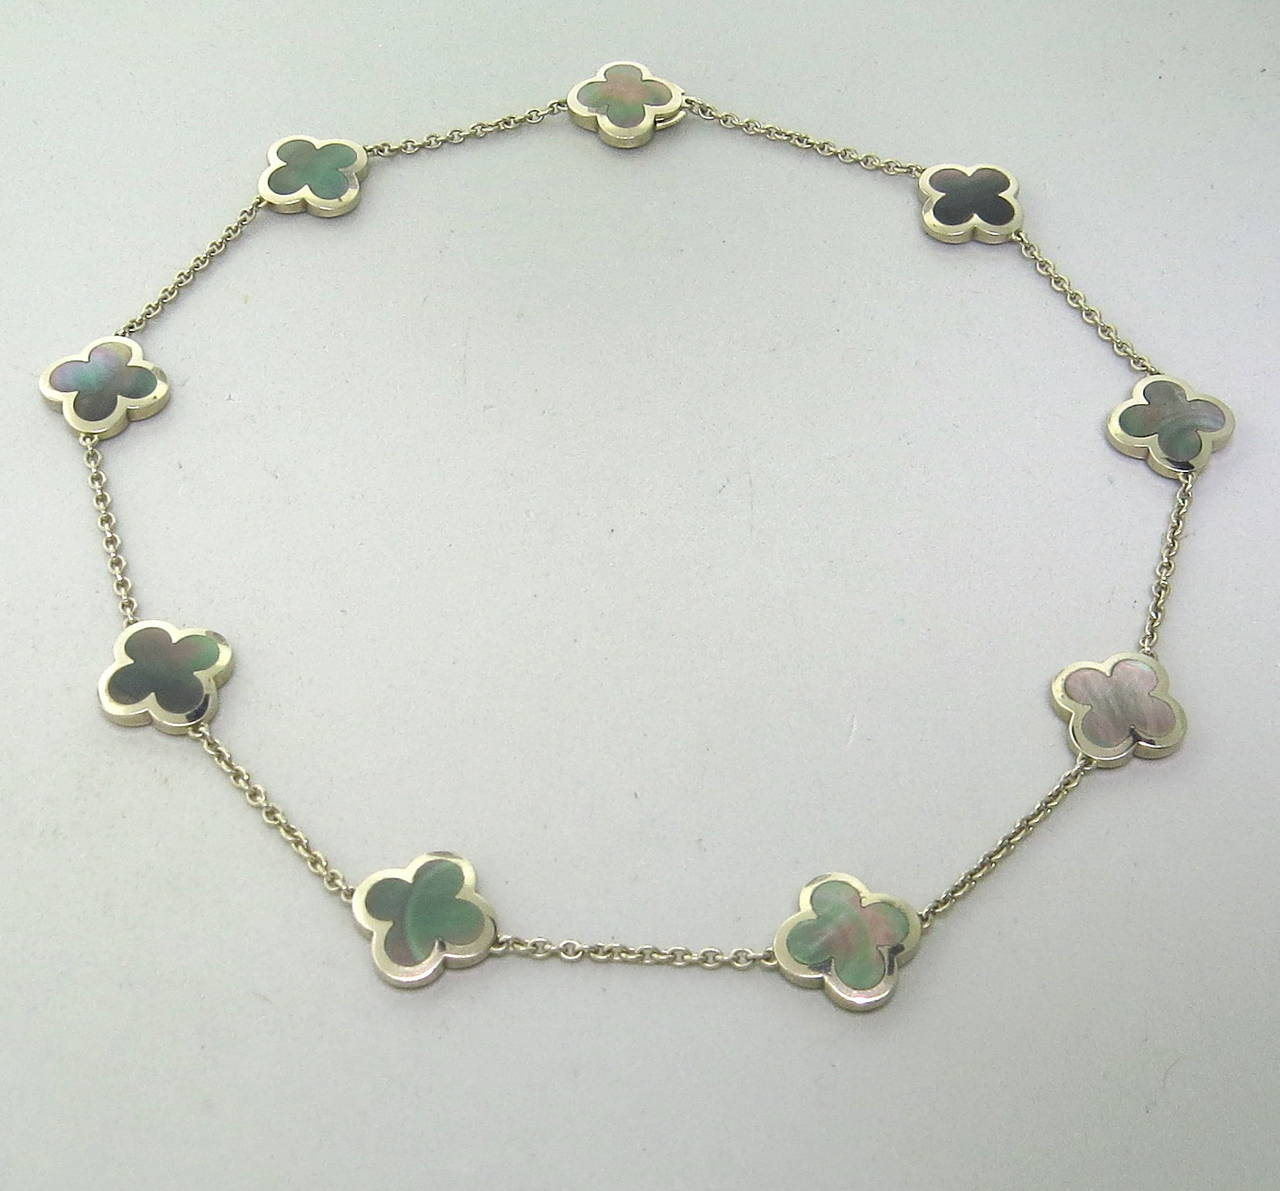 743a2a9c0e94 Van Cleef   Arpels 18k white gold necklace from iconic Alhambra collection